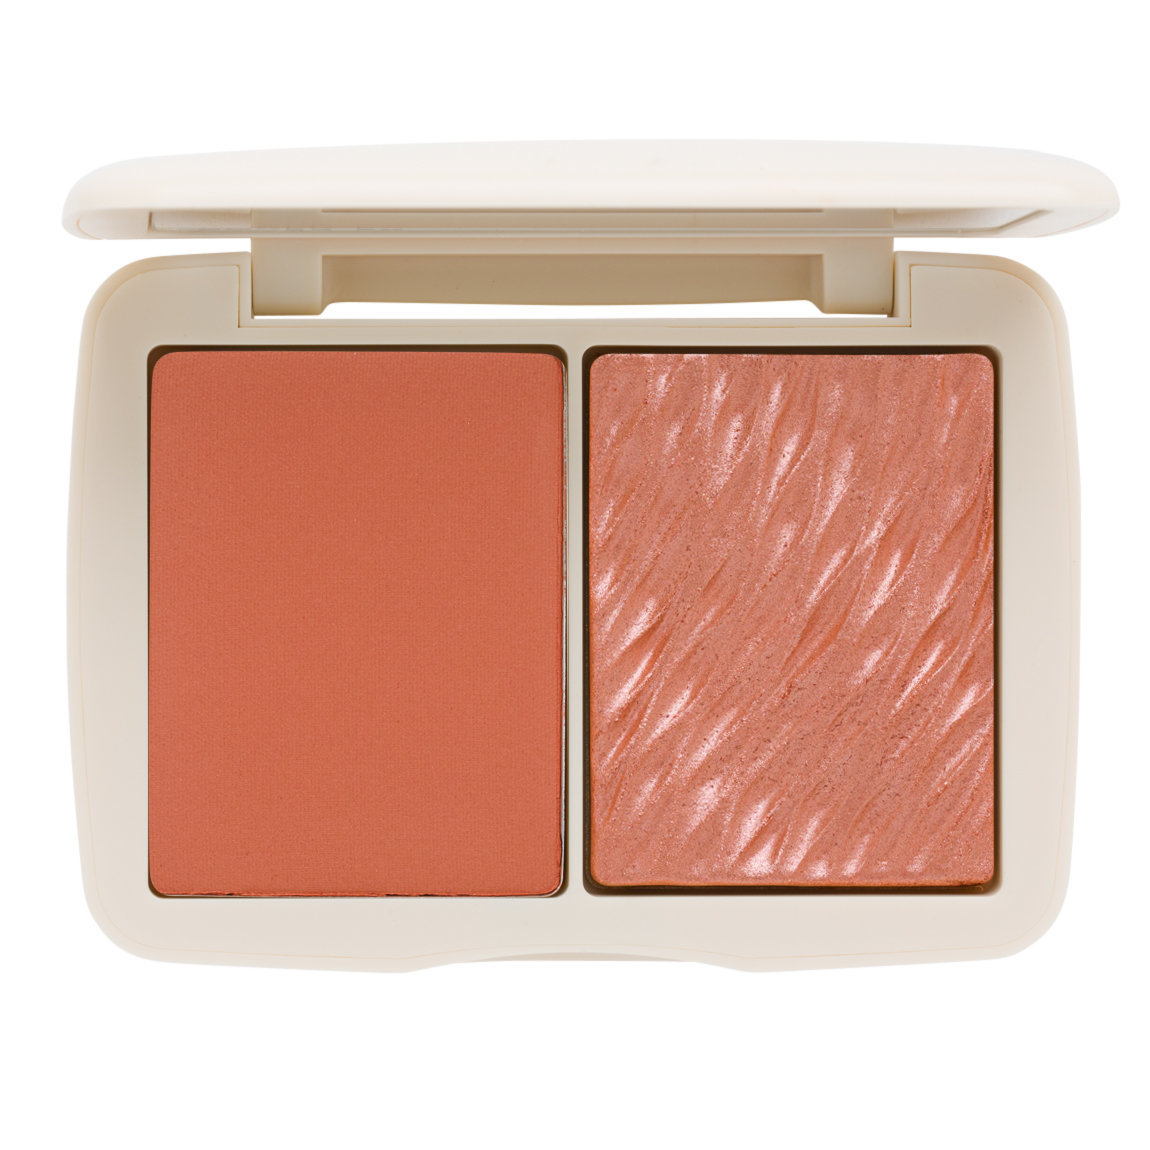 COVER | FX Monochromatic Blush Duo Warm Honey product smear.